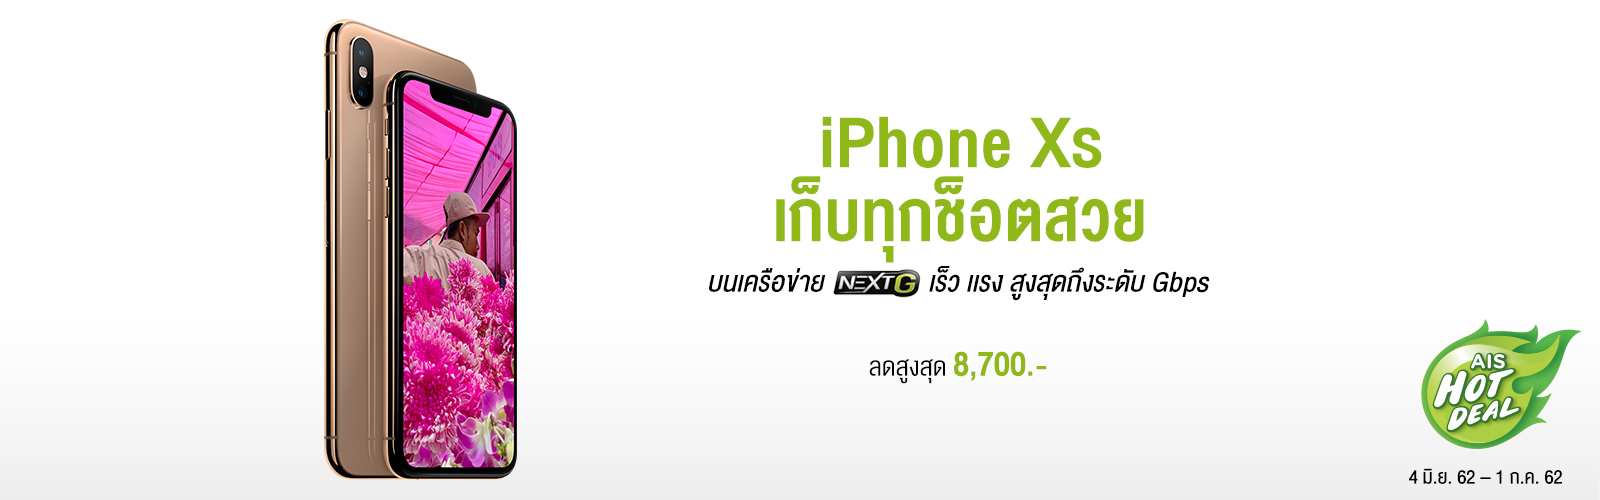 iPhone_XS_Tue_TH